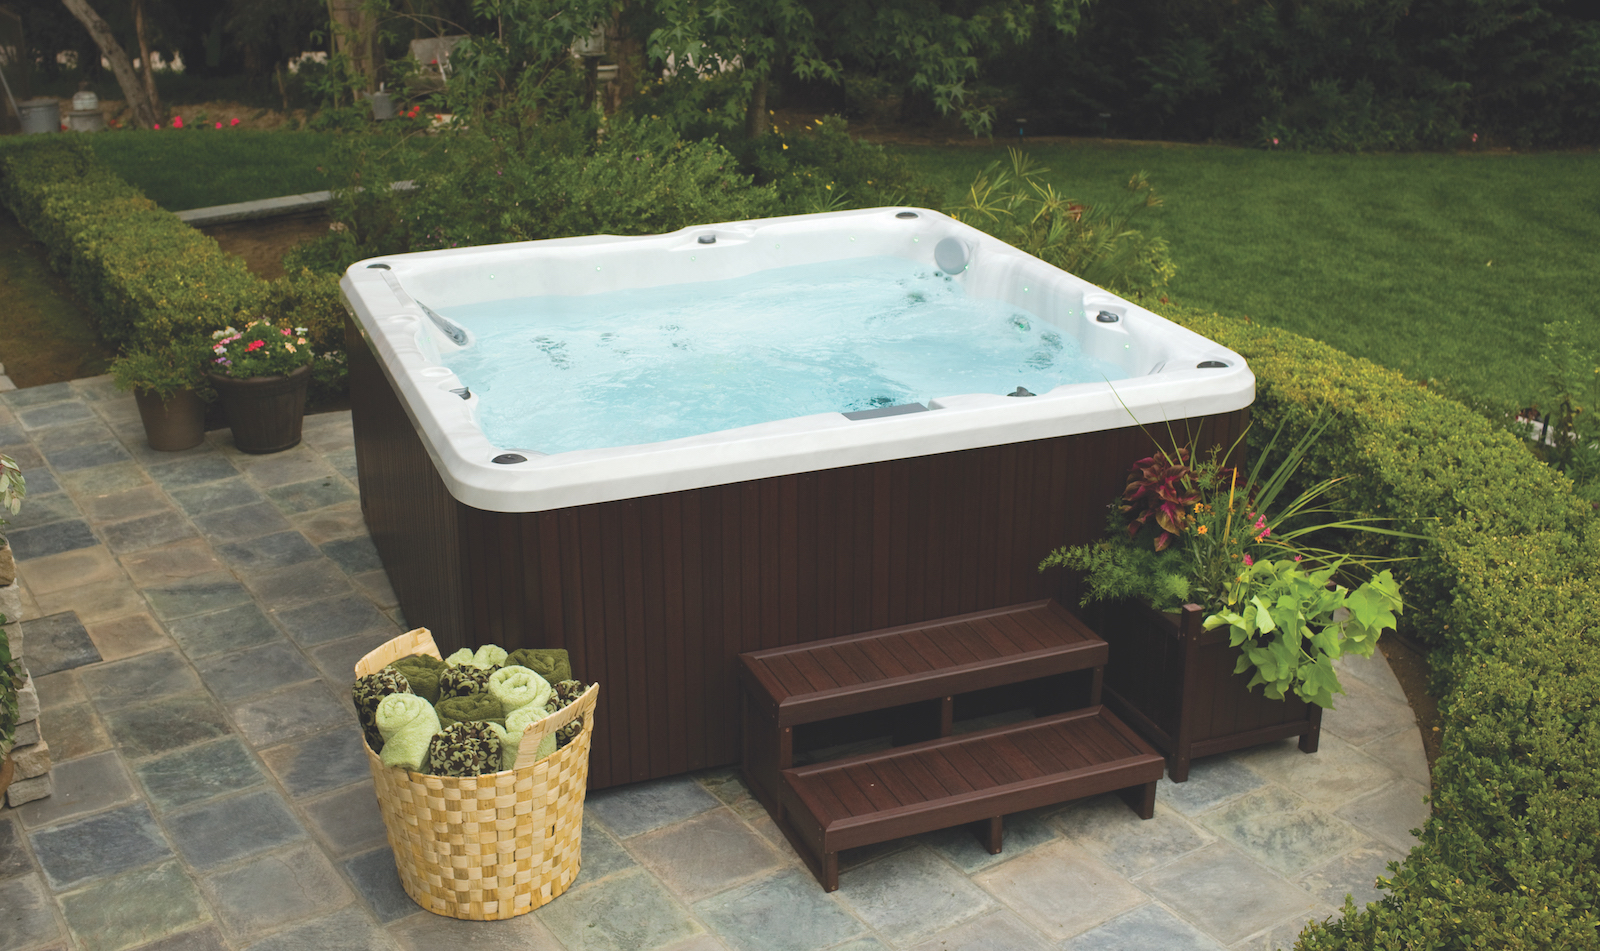 How To Drain And Clean Your Hot Tub Zagers Pool Amp Spa